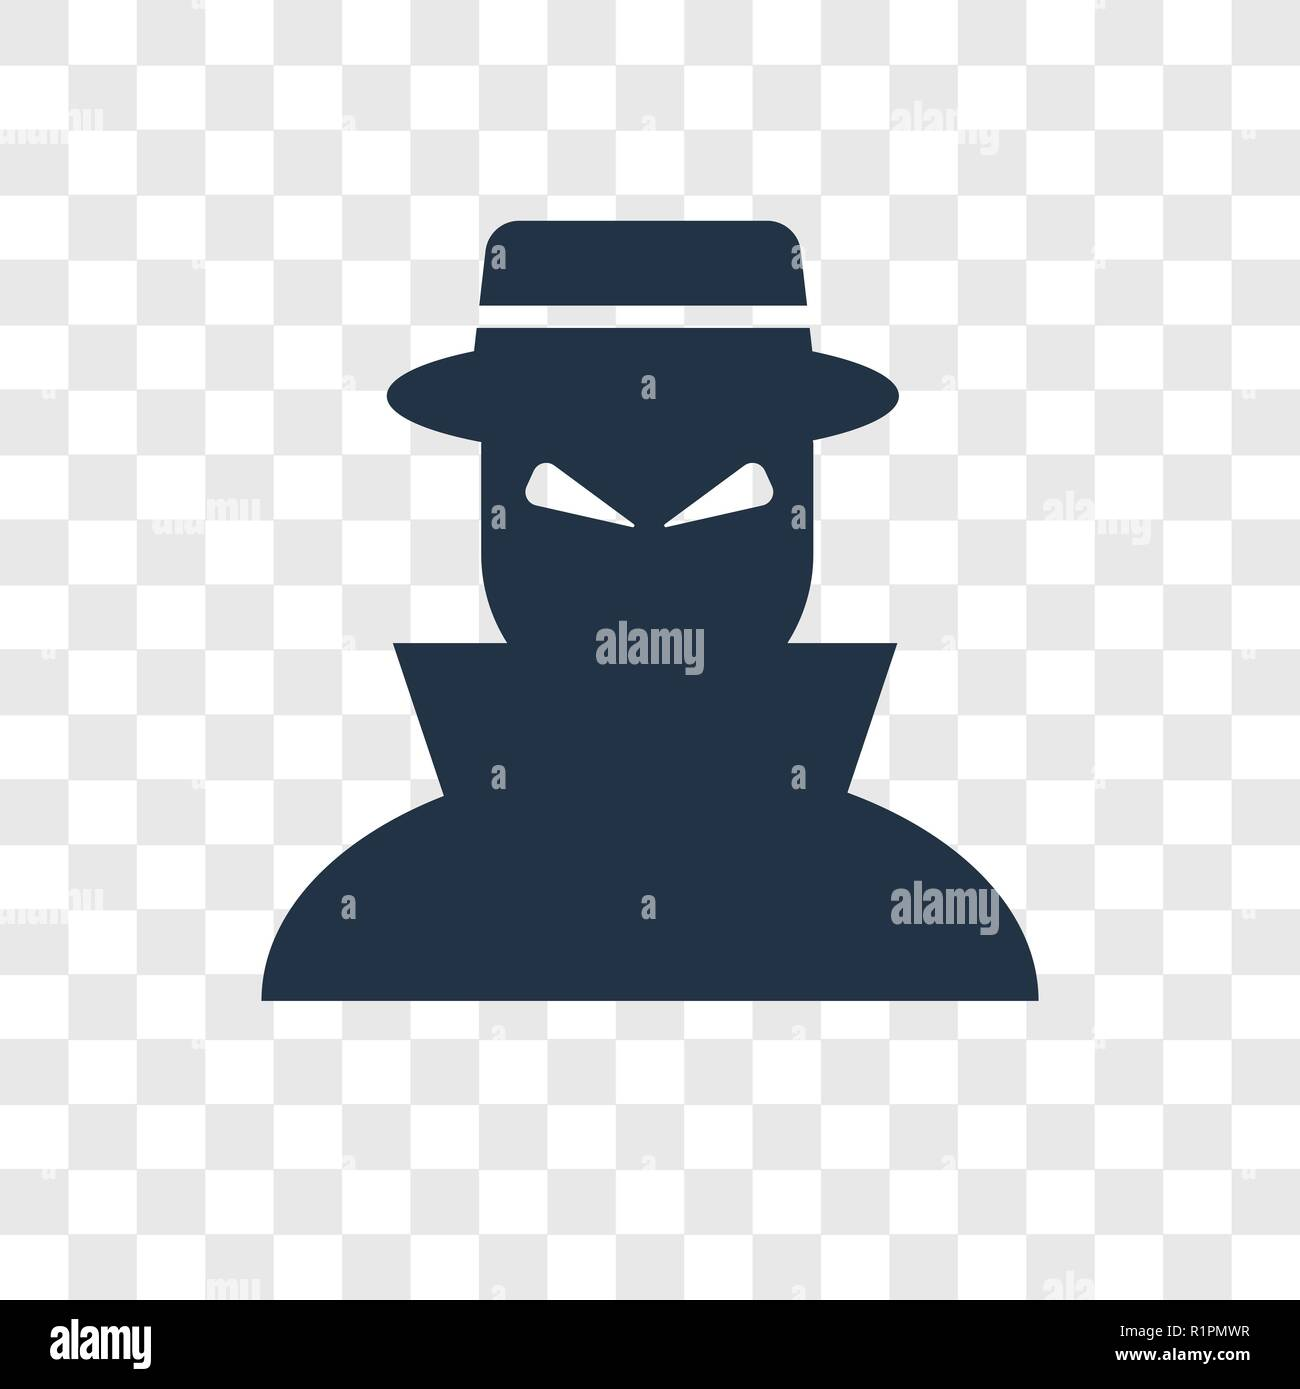 spy vector icon isolated on transparent background spy transparency logo concept stock vector image art alamy https www alamy com spy vector icon isolated on transparent background spy transparency logo concept image224848787 html